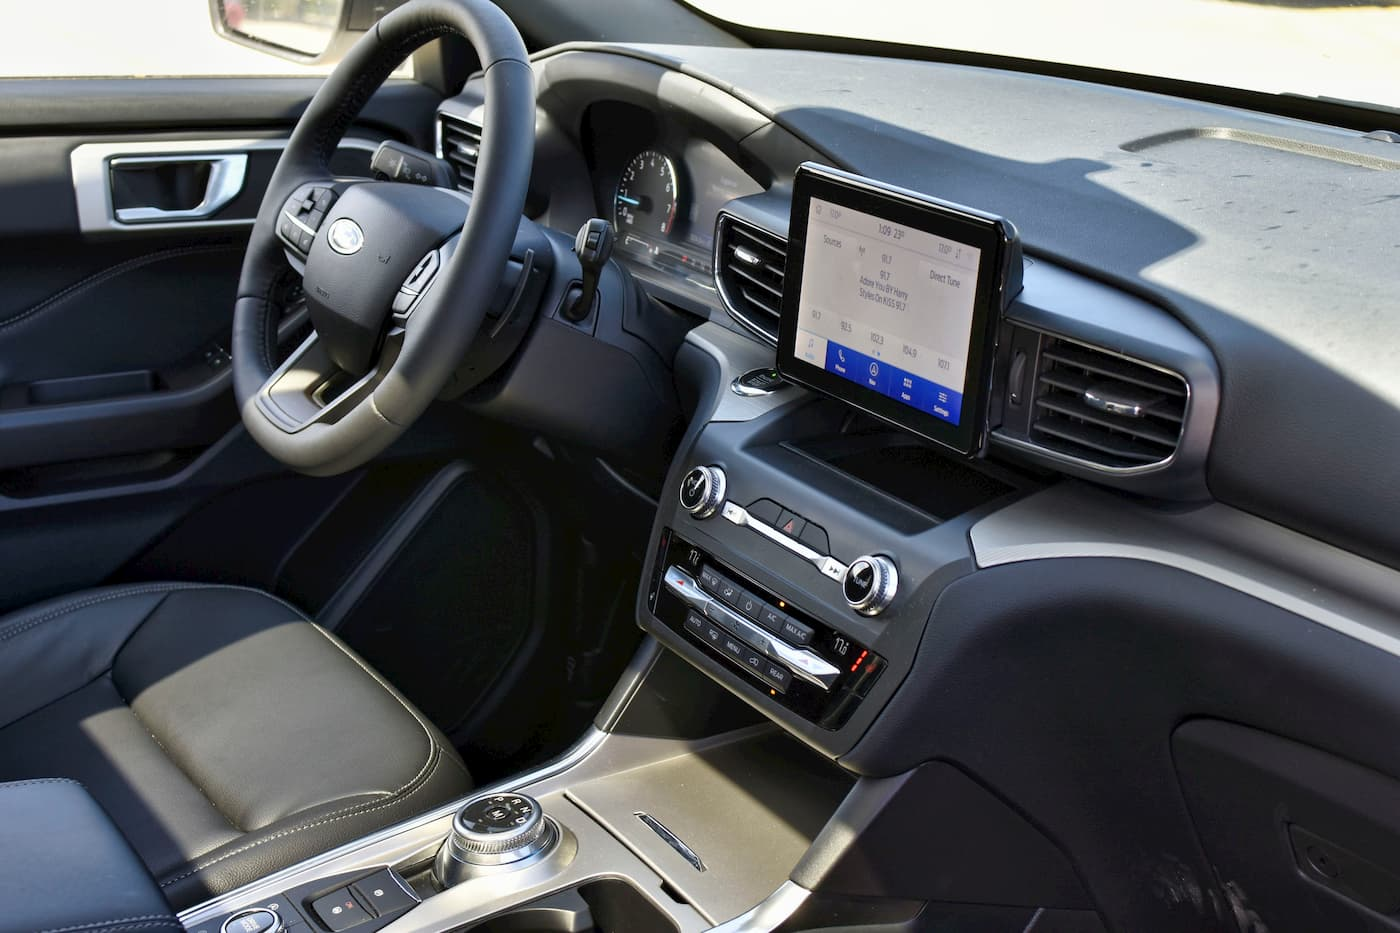 2020 Ford Explorer Front Dash Shot